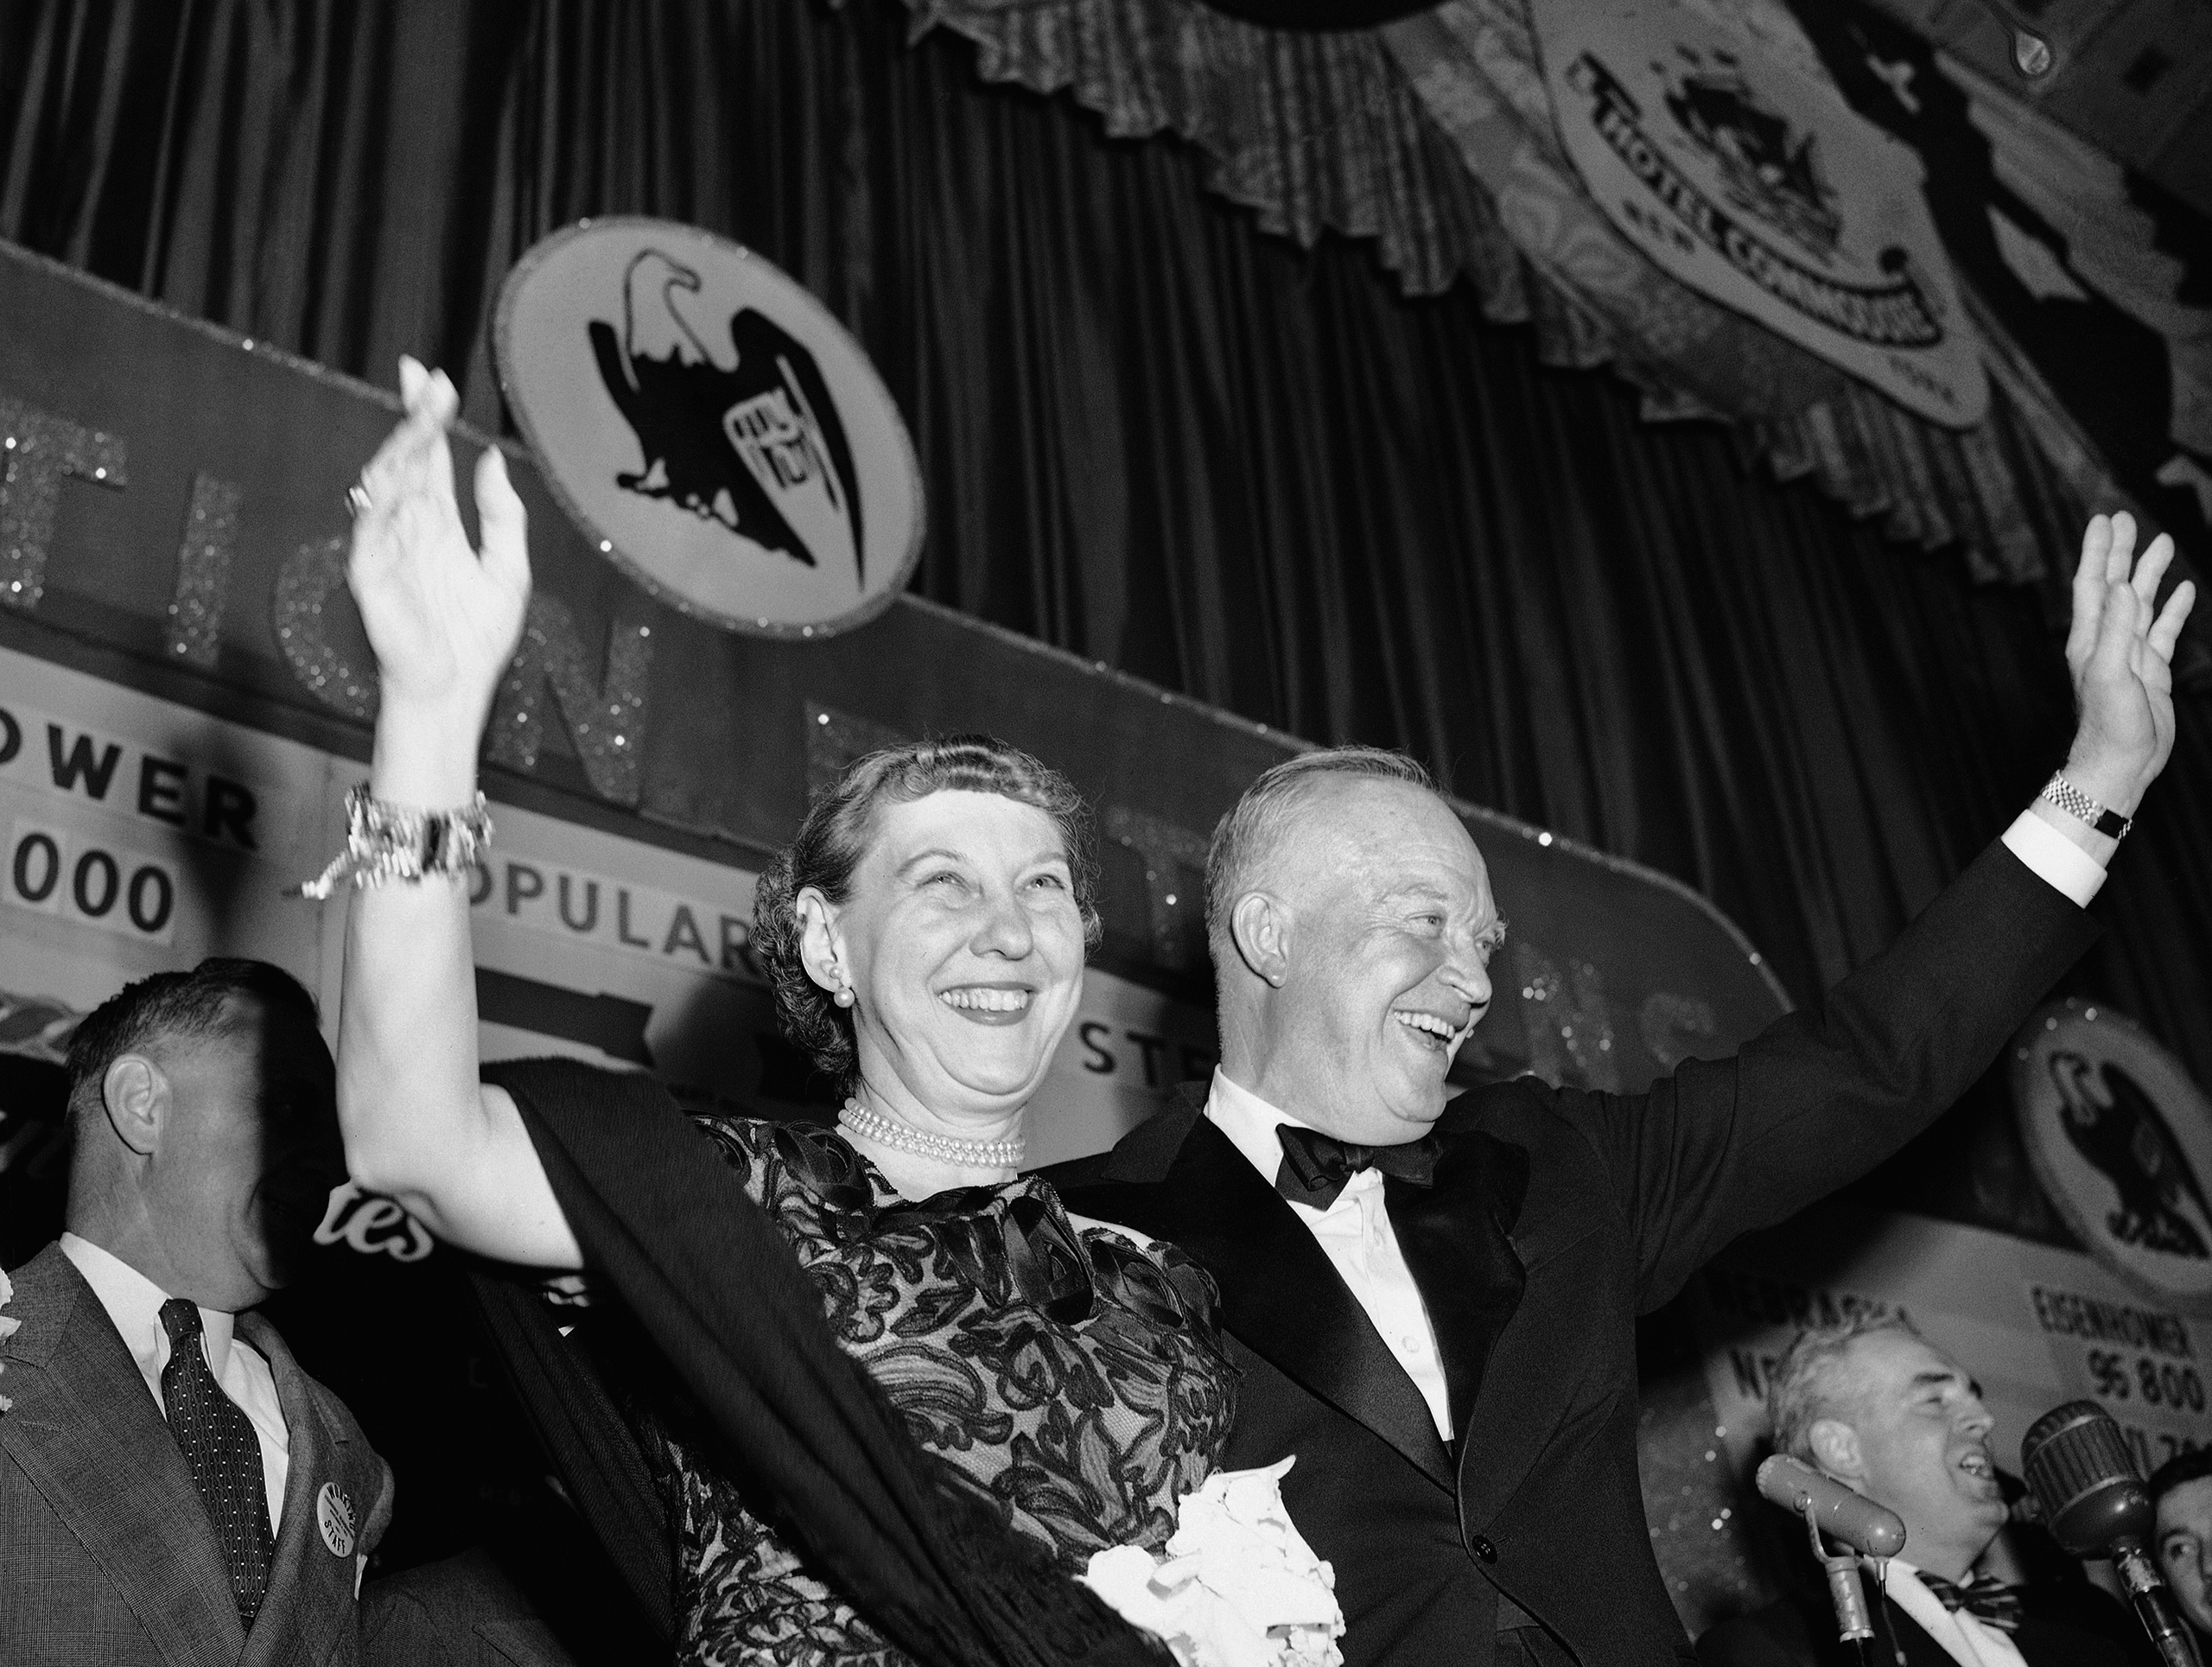 President-elect Dwight Eisenhower and the First Lady-elect Mamie Eisenhower wave to the cheering crowd in the Grand Ballroom of the Hotel Commodore in New York City on Nov. 5, 1952.